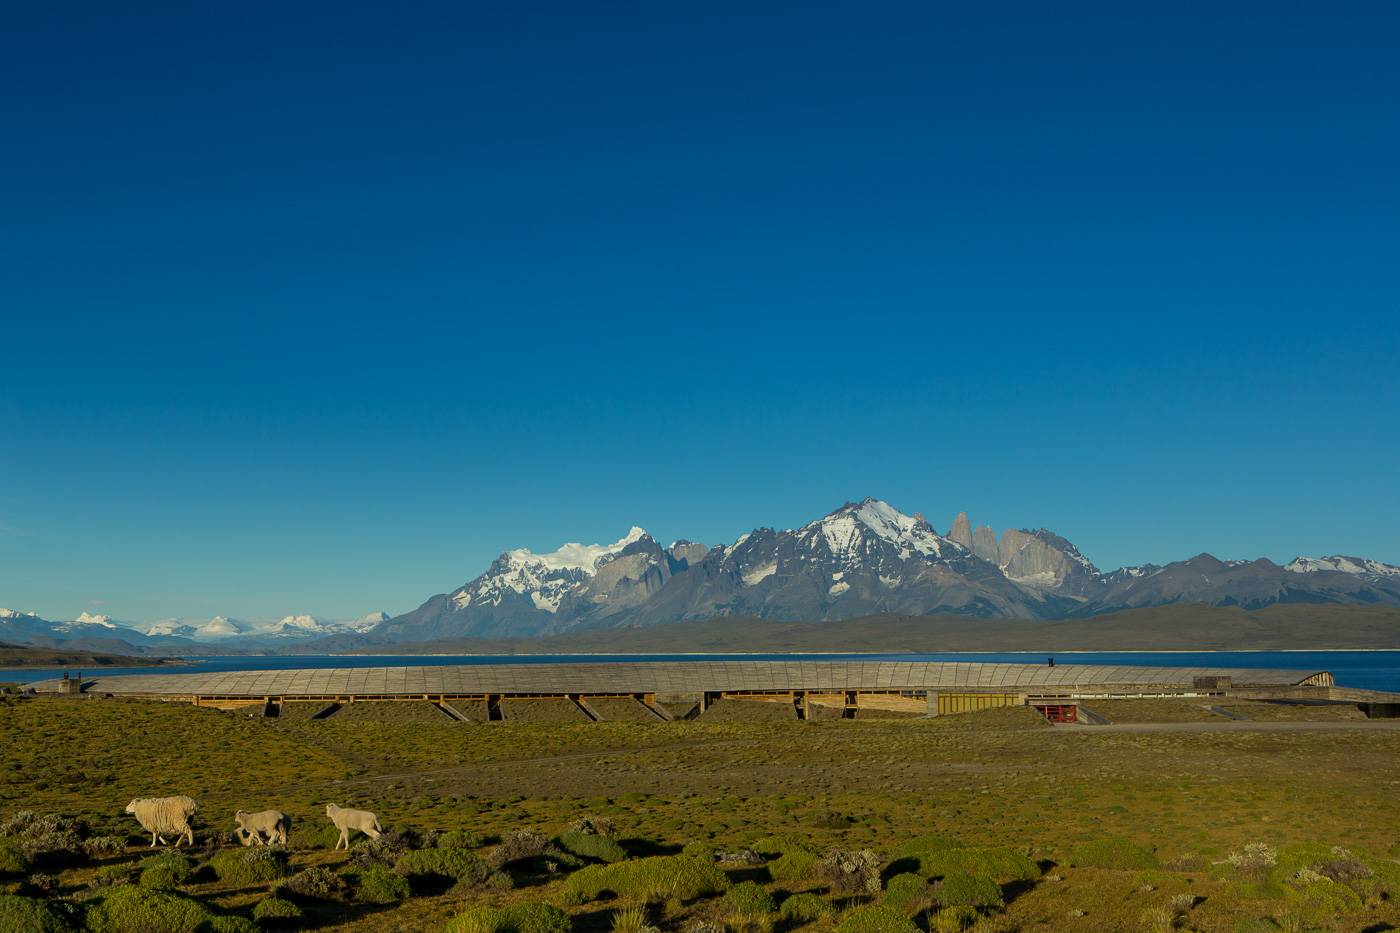 Tierra Patagonia with lake Sarmiento in background(2).jpg